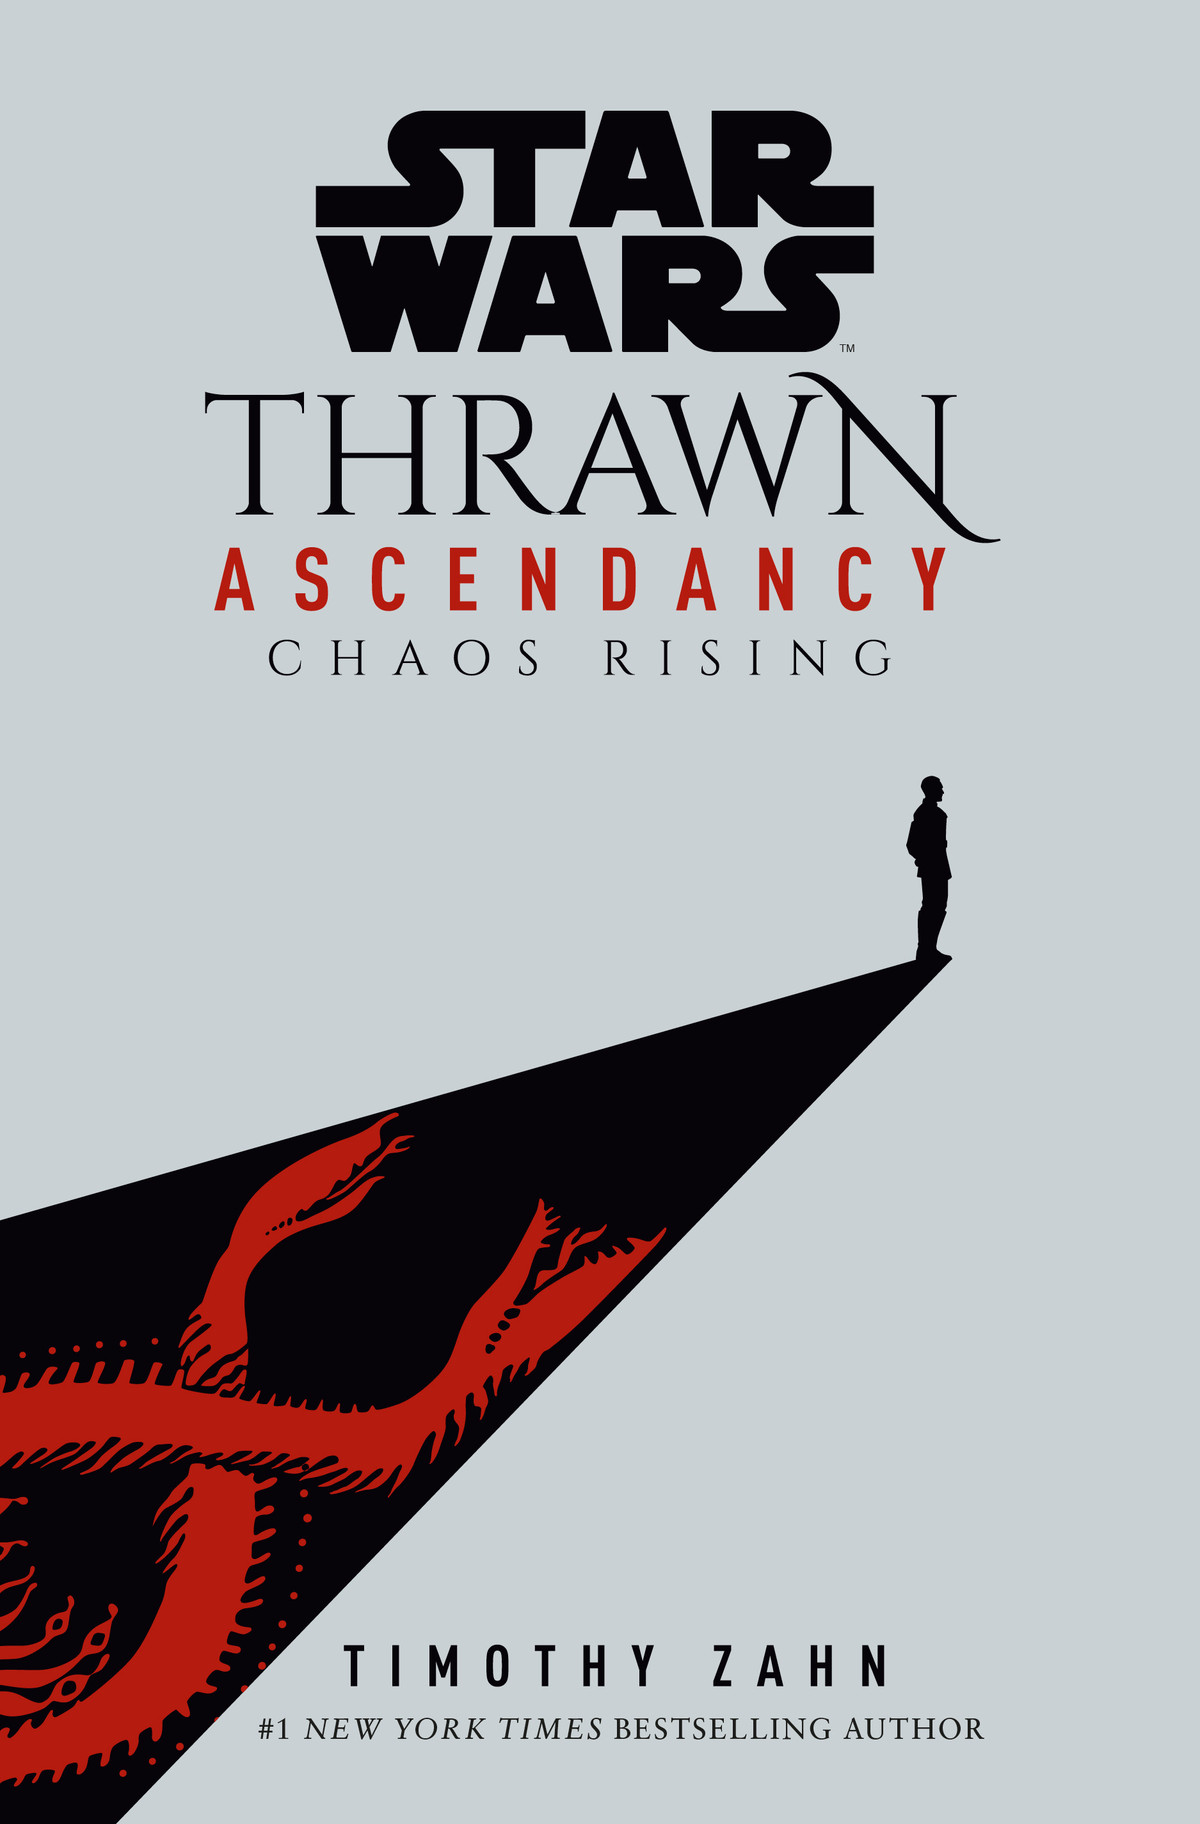 Star Wars: Thrawn Ascendancy: Chaos Rising by Timothy Zahn